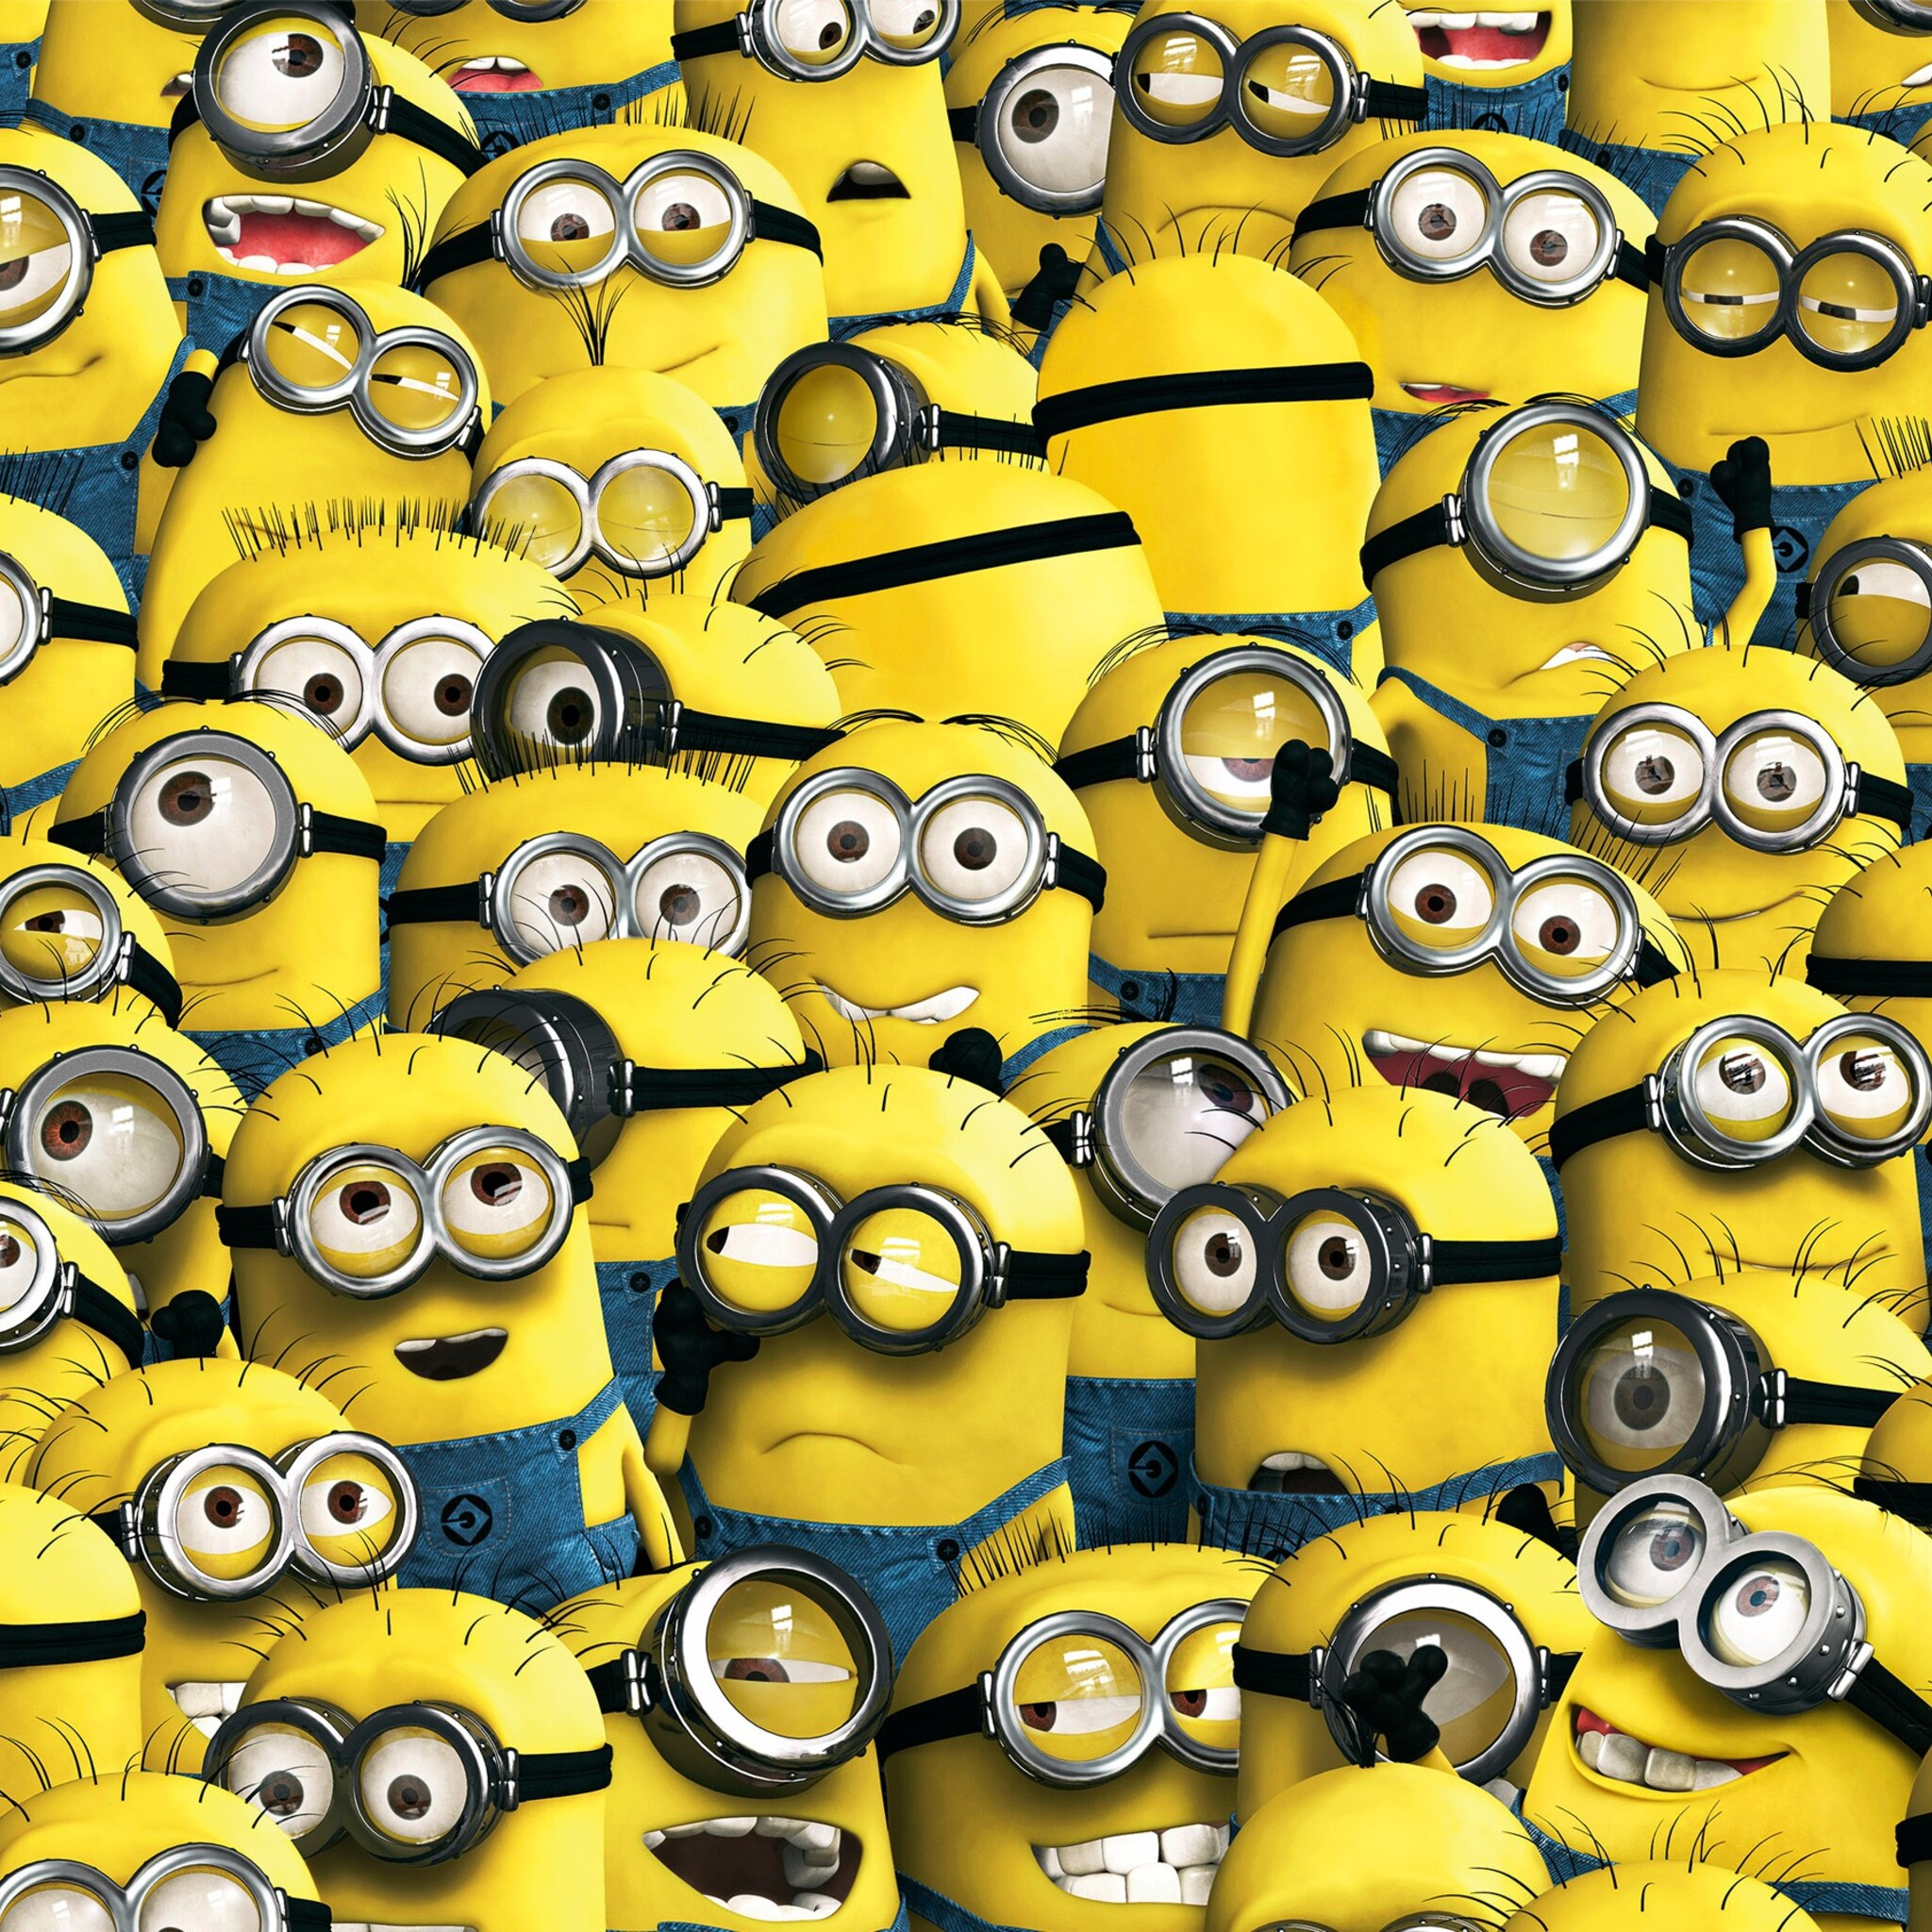 2048x2048 Minions 6 Ipad Air HD 4k Wallpapers, Images ...